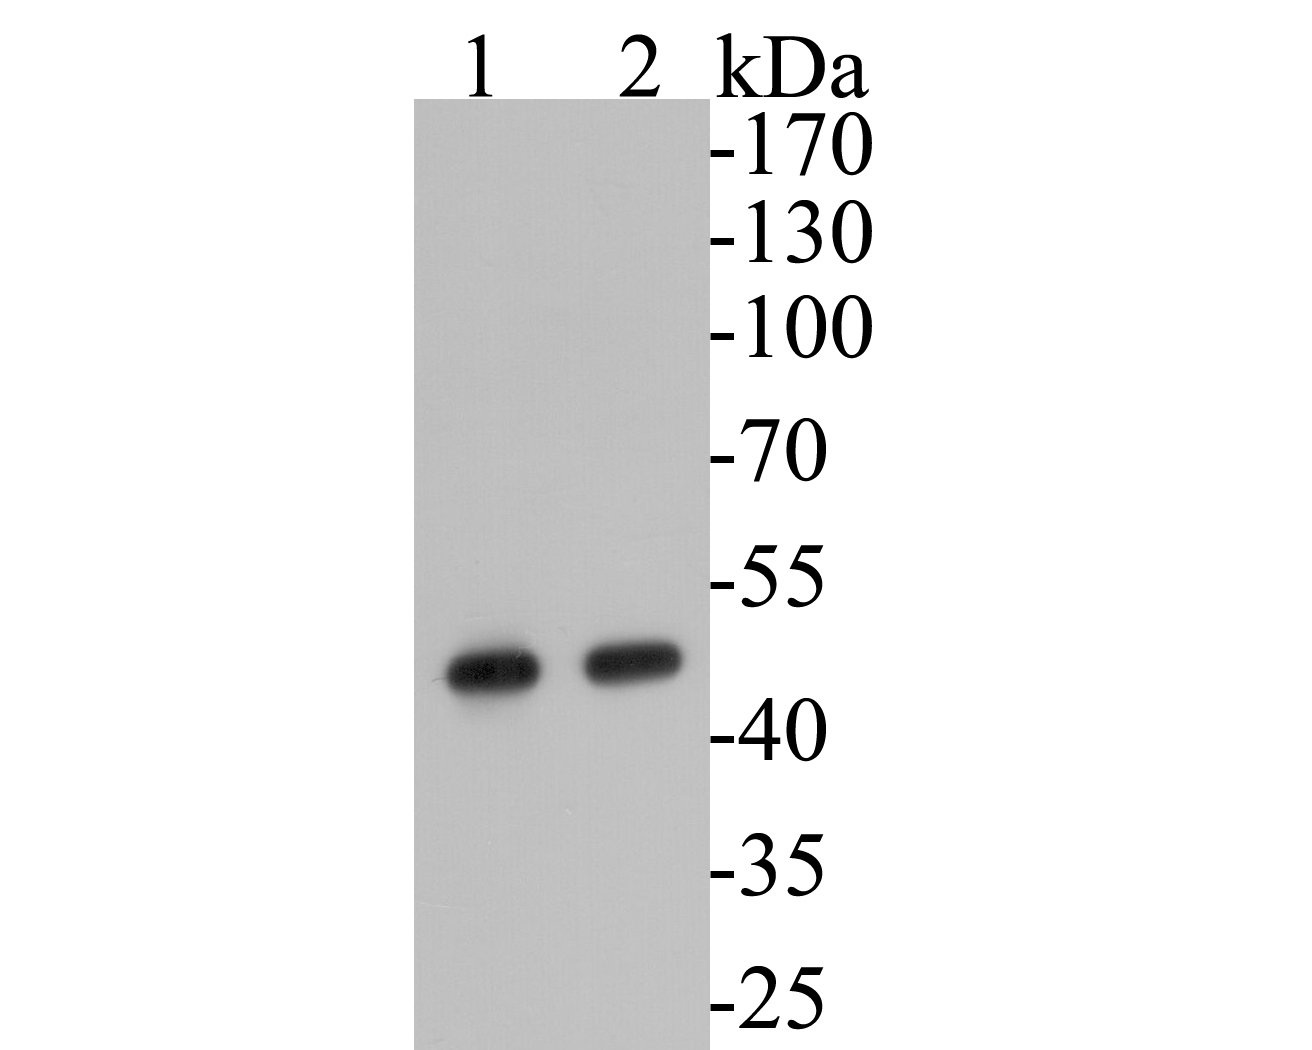 Western blot analysis of Aspartate Aminotransferase on different lysates. Proteins were transferred to a PVDF membrane and blocked with 5% BSA in PBS for 1 hour at room temperature. The primary antibody (EM1901-50, 1/500) was used in 5% BSA at room temperature for 2 hours. Goat Anti-Mouse IgG - HRP Secondary Antibody (HA1006) at 1:5,000 dilution was used for 1 hour at room temperature.<br />  Positive control: <br />  Lane 1: HepG2 cell lysate<br />  Lane 2: K562 cell lysate